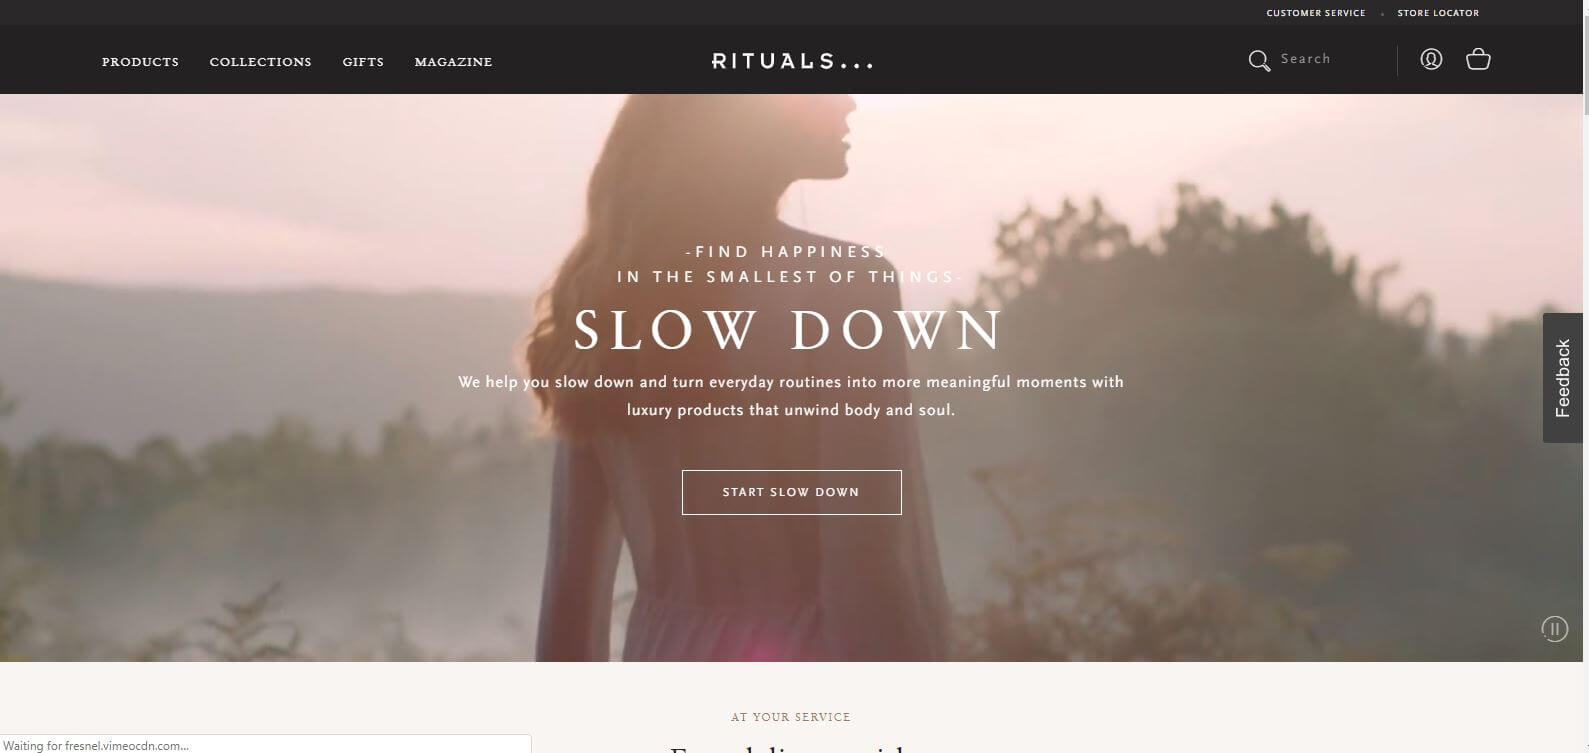 Rituals // Video-Analisi CRO di un Ecommerce // Ottimizzare Conversioni